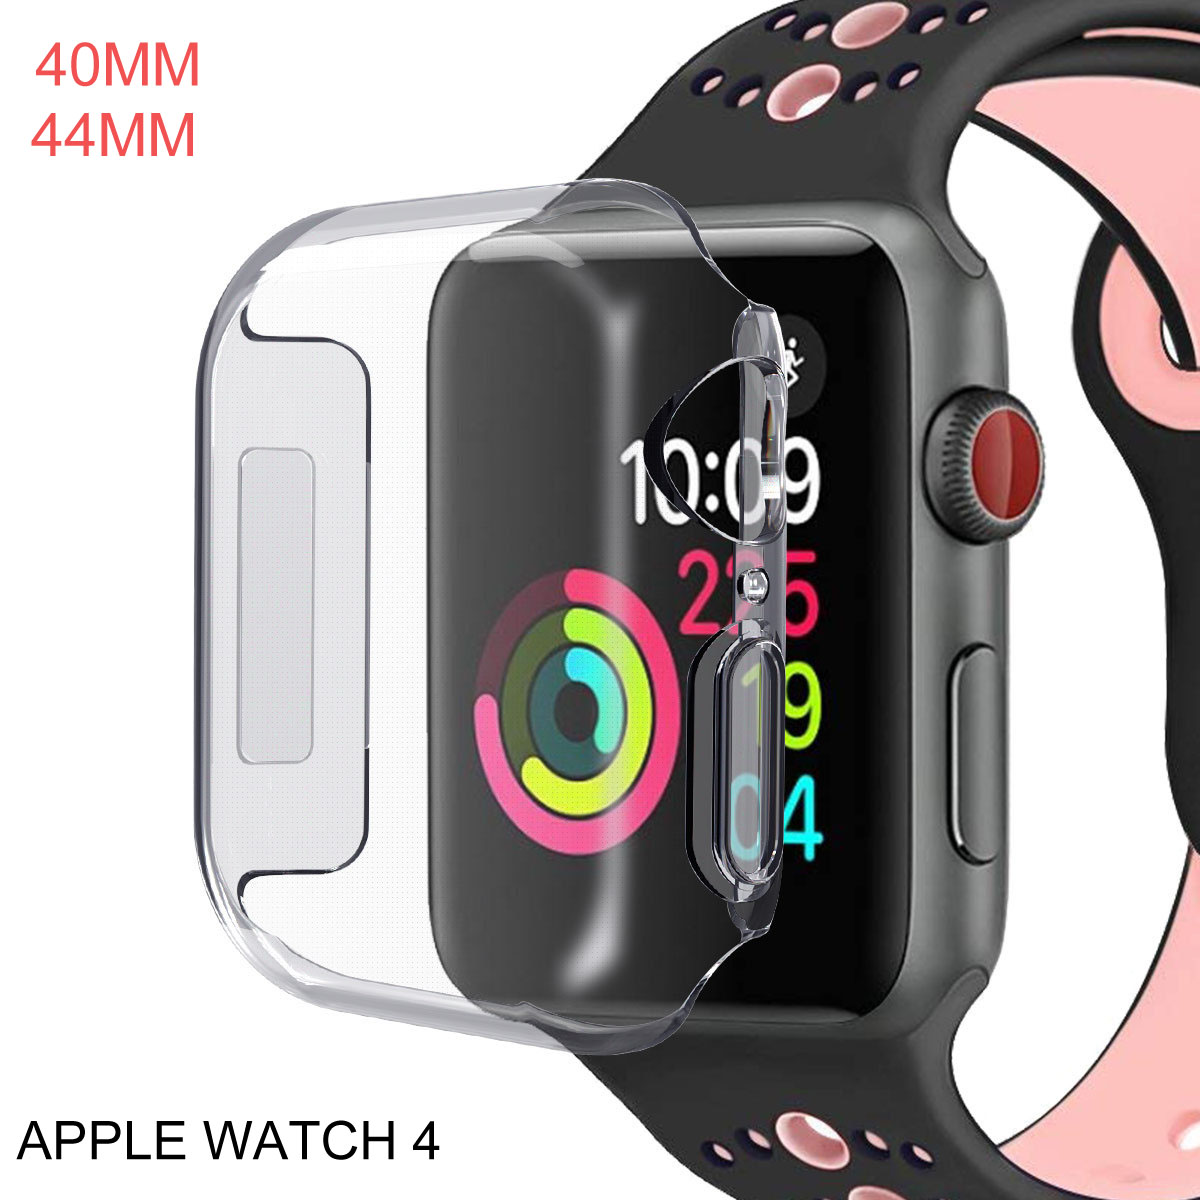 Silicone Soft Full Case for Apple Watch 44mm 40mm Cover iWatch Series 4 5 All-around Ultra-thin Clear Case Watch Accessories